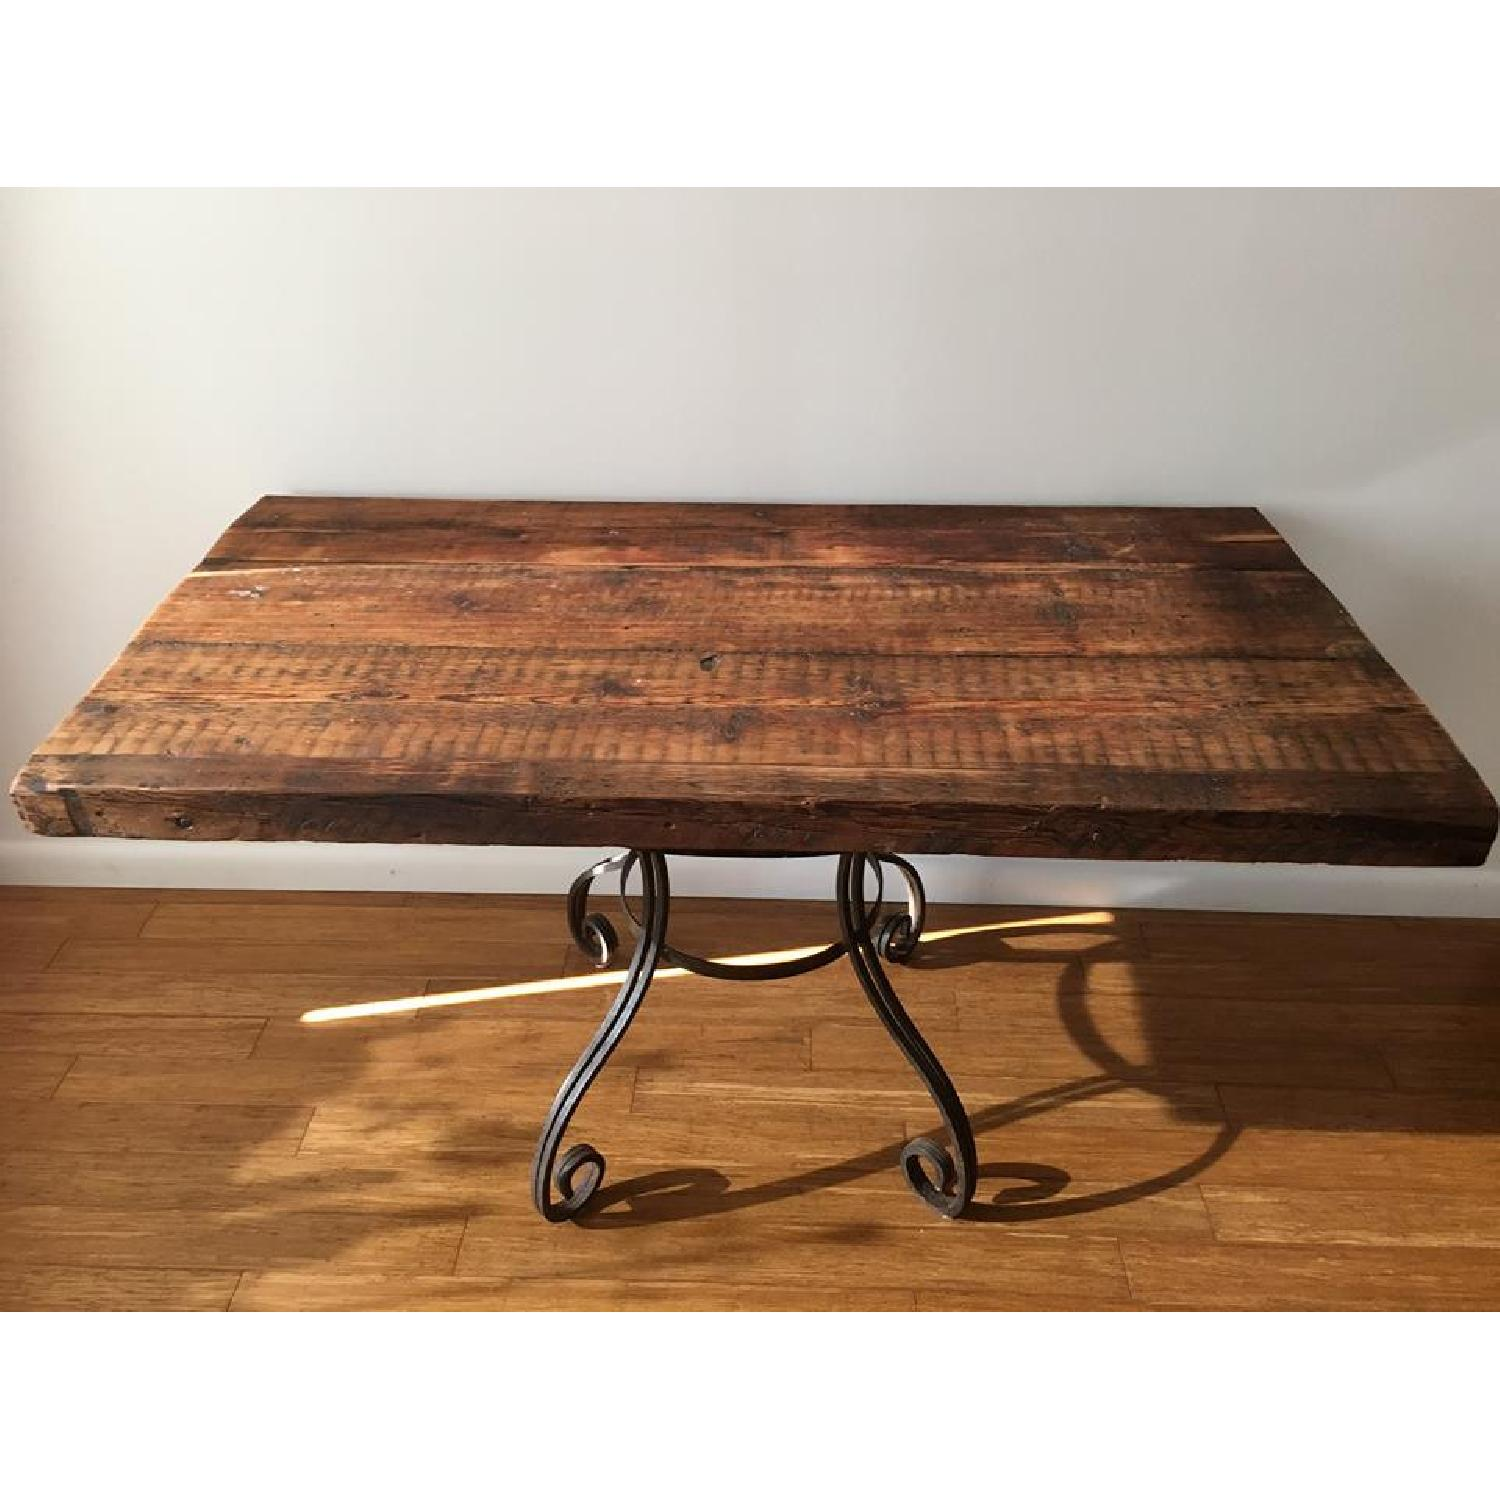 Rustic Dining Table w/ 1 Bench - image-1